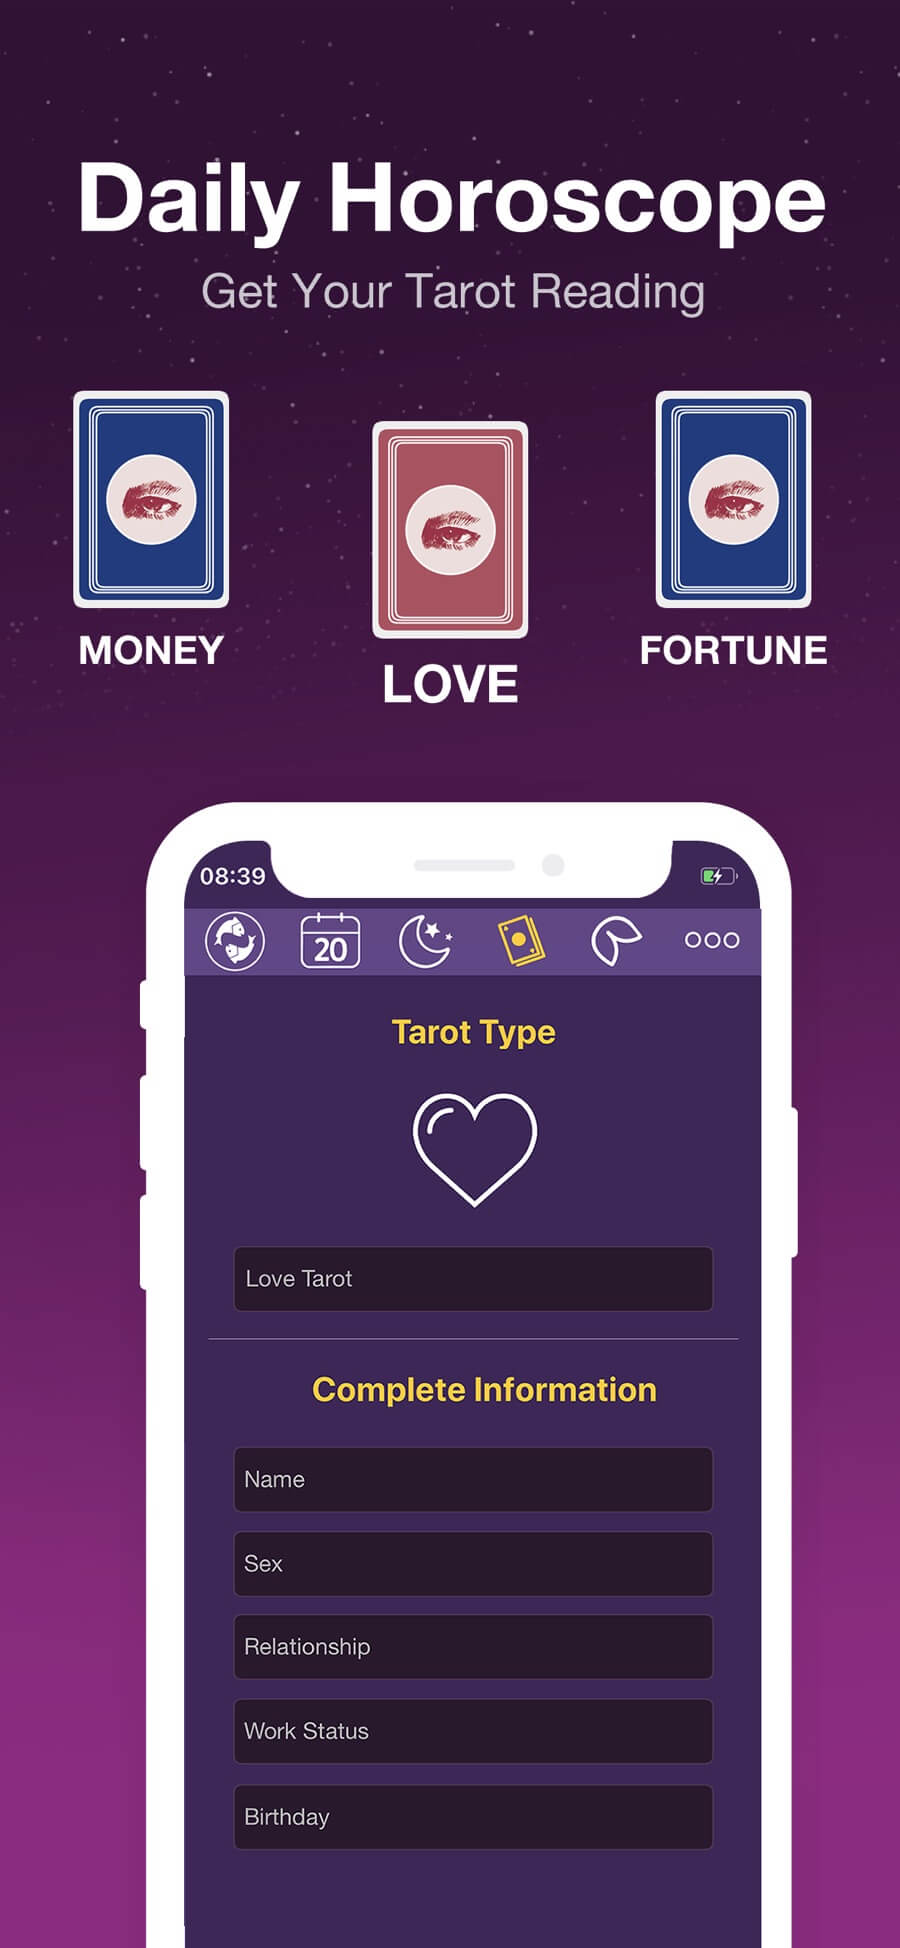 5e165c6a6 Daily Horoscopes - Astrology. Daily Horoscope – Astrology is the best app  for Zodiacs!